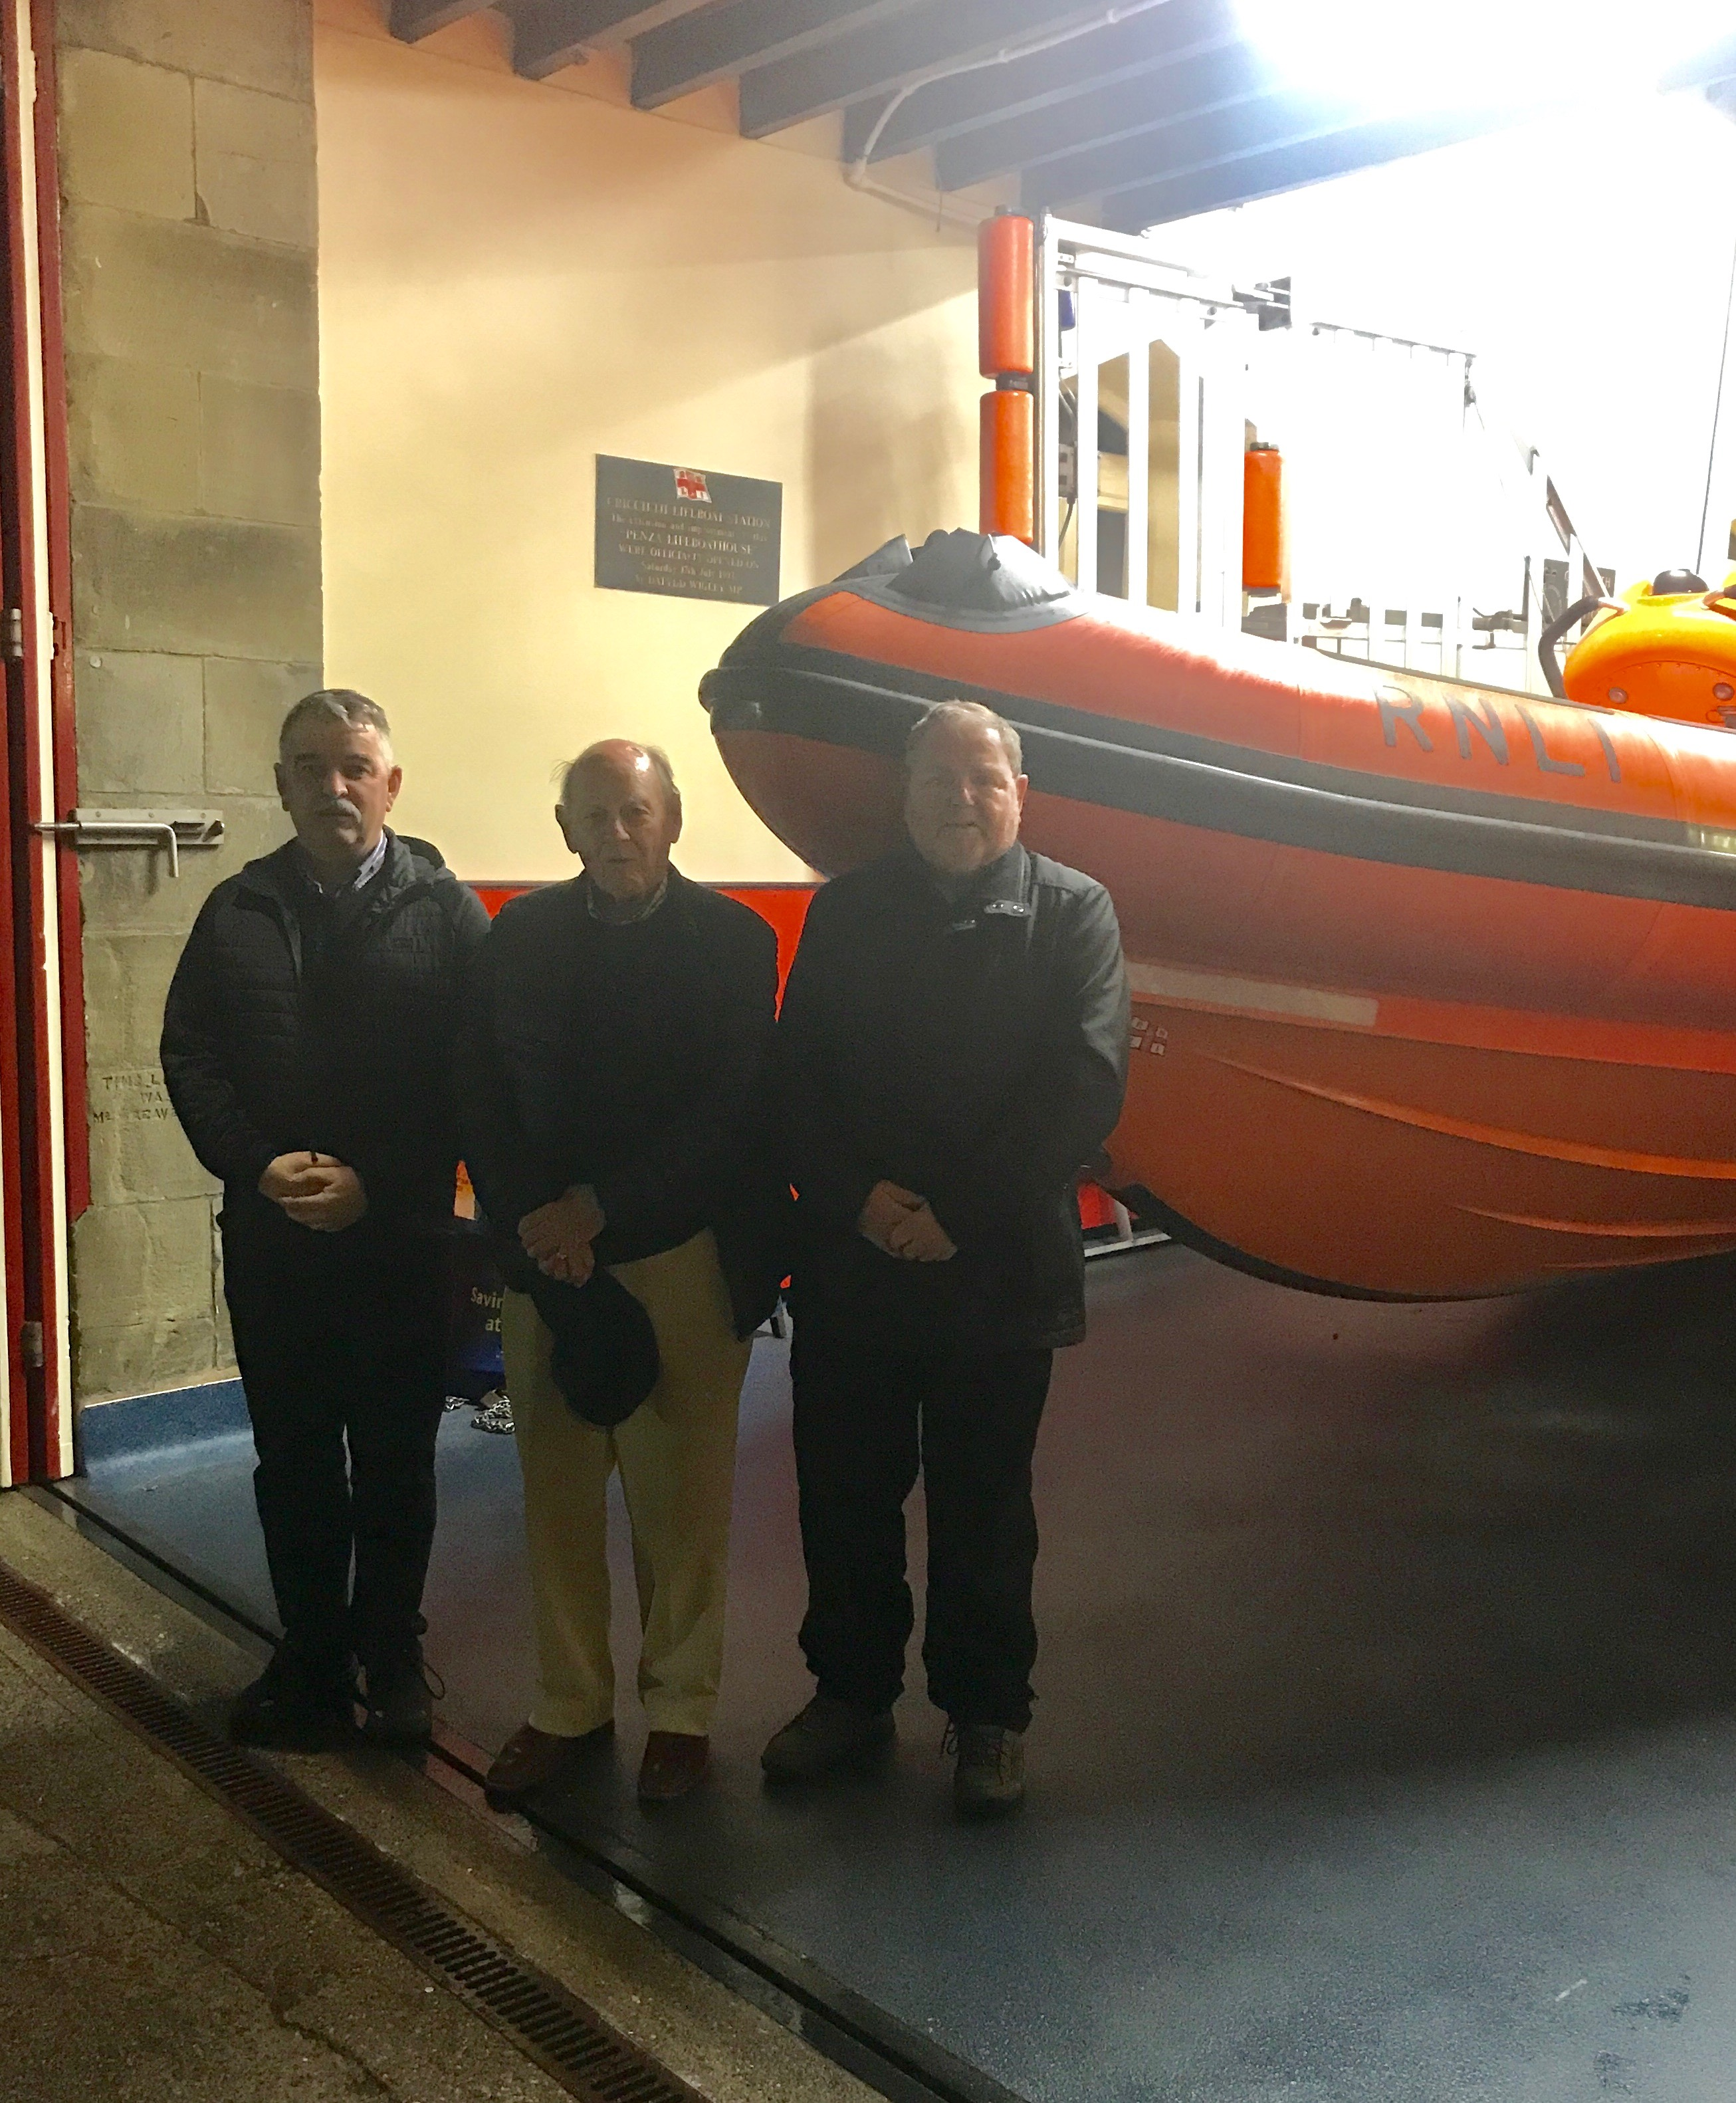 At the recent Annual Open Meeting of Criccieth RNLI Lifeboat Station, major changes were announced with the departure of the Station's long-serving Chairman Dr Elwyn Tudor Jones and changes at Lifeboat Operations Manager and Senior Helmsman.